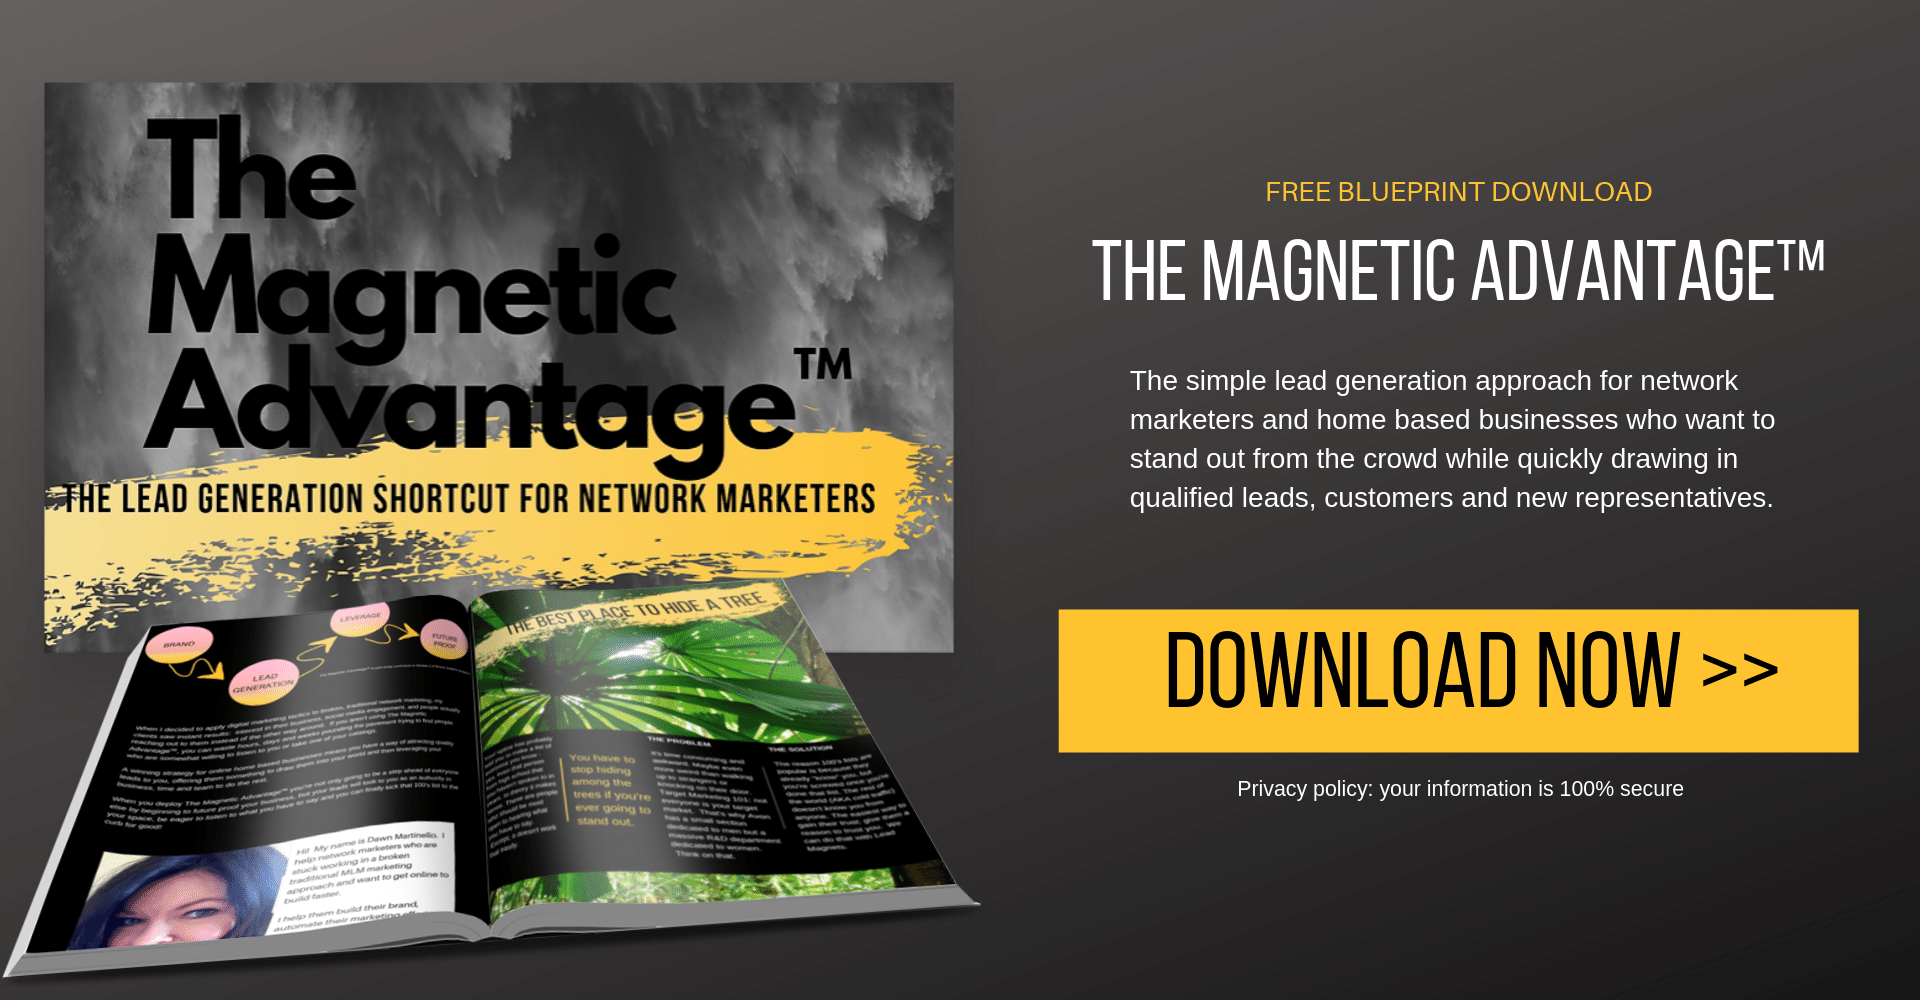 The Magnetic Advantage: The lead generation shortcut for network marketers